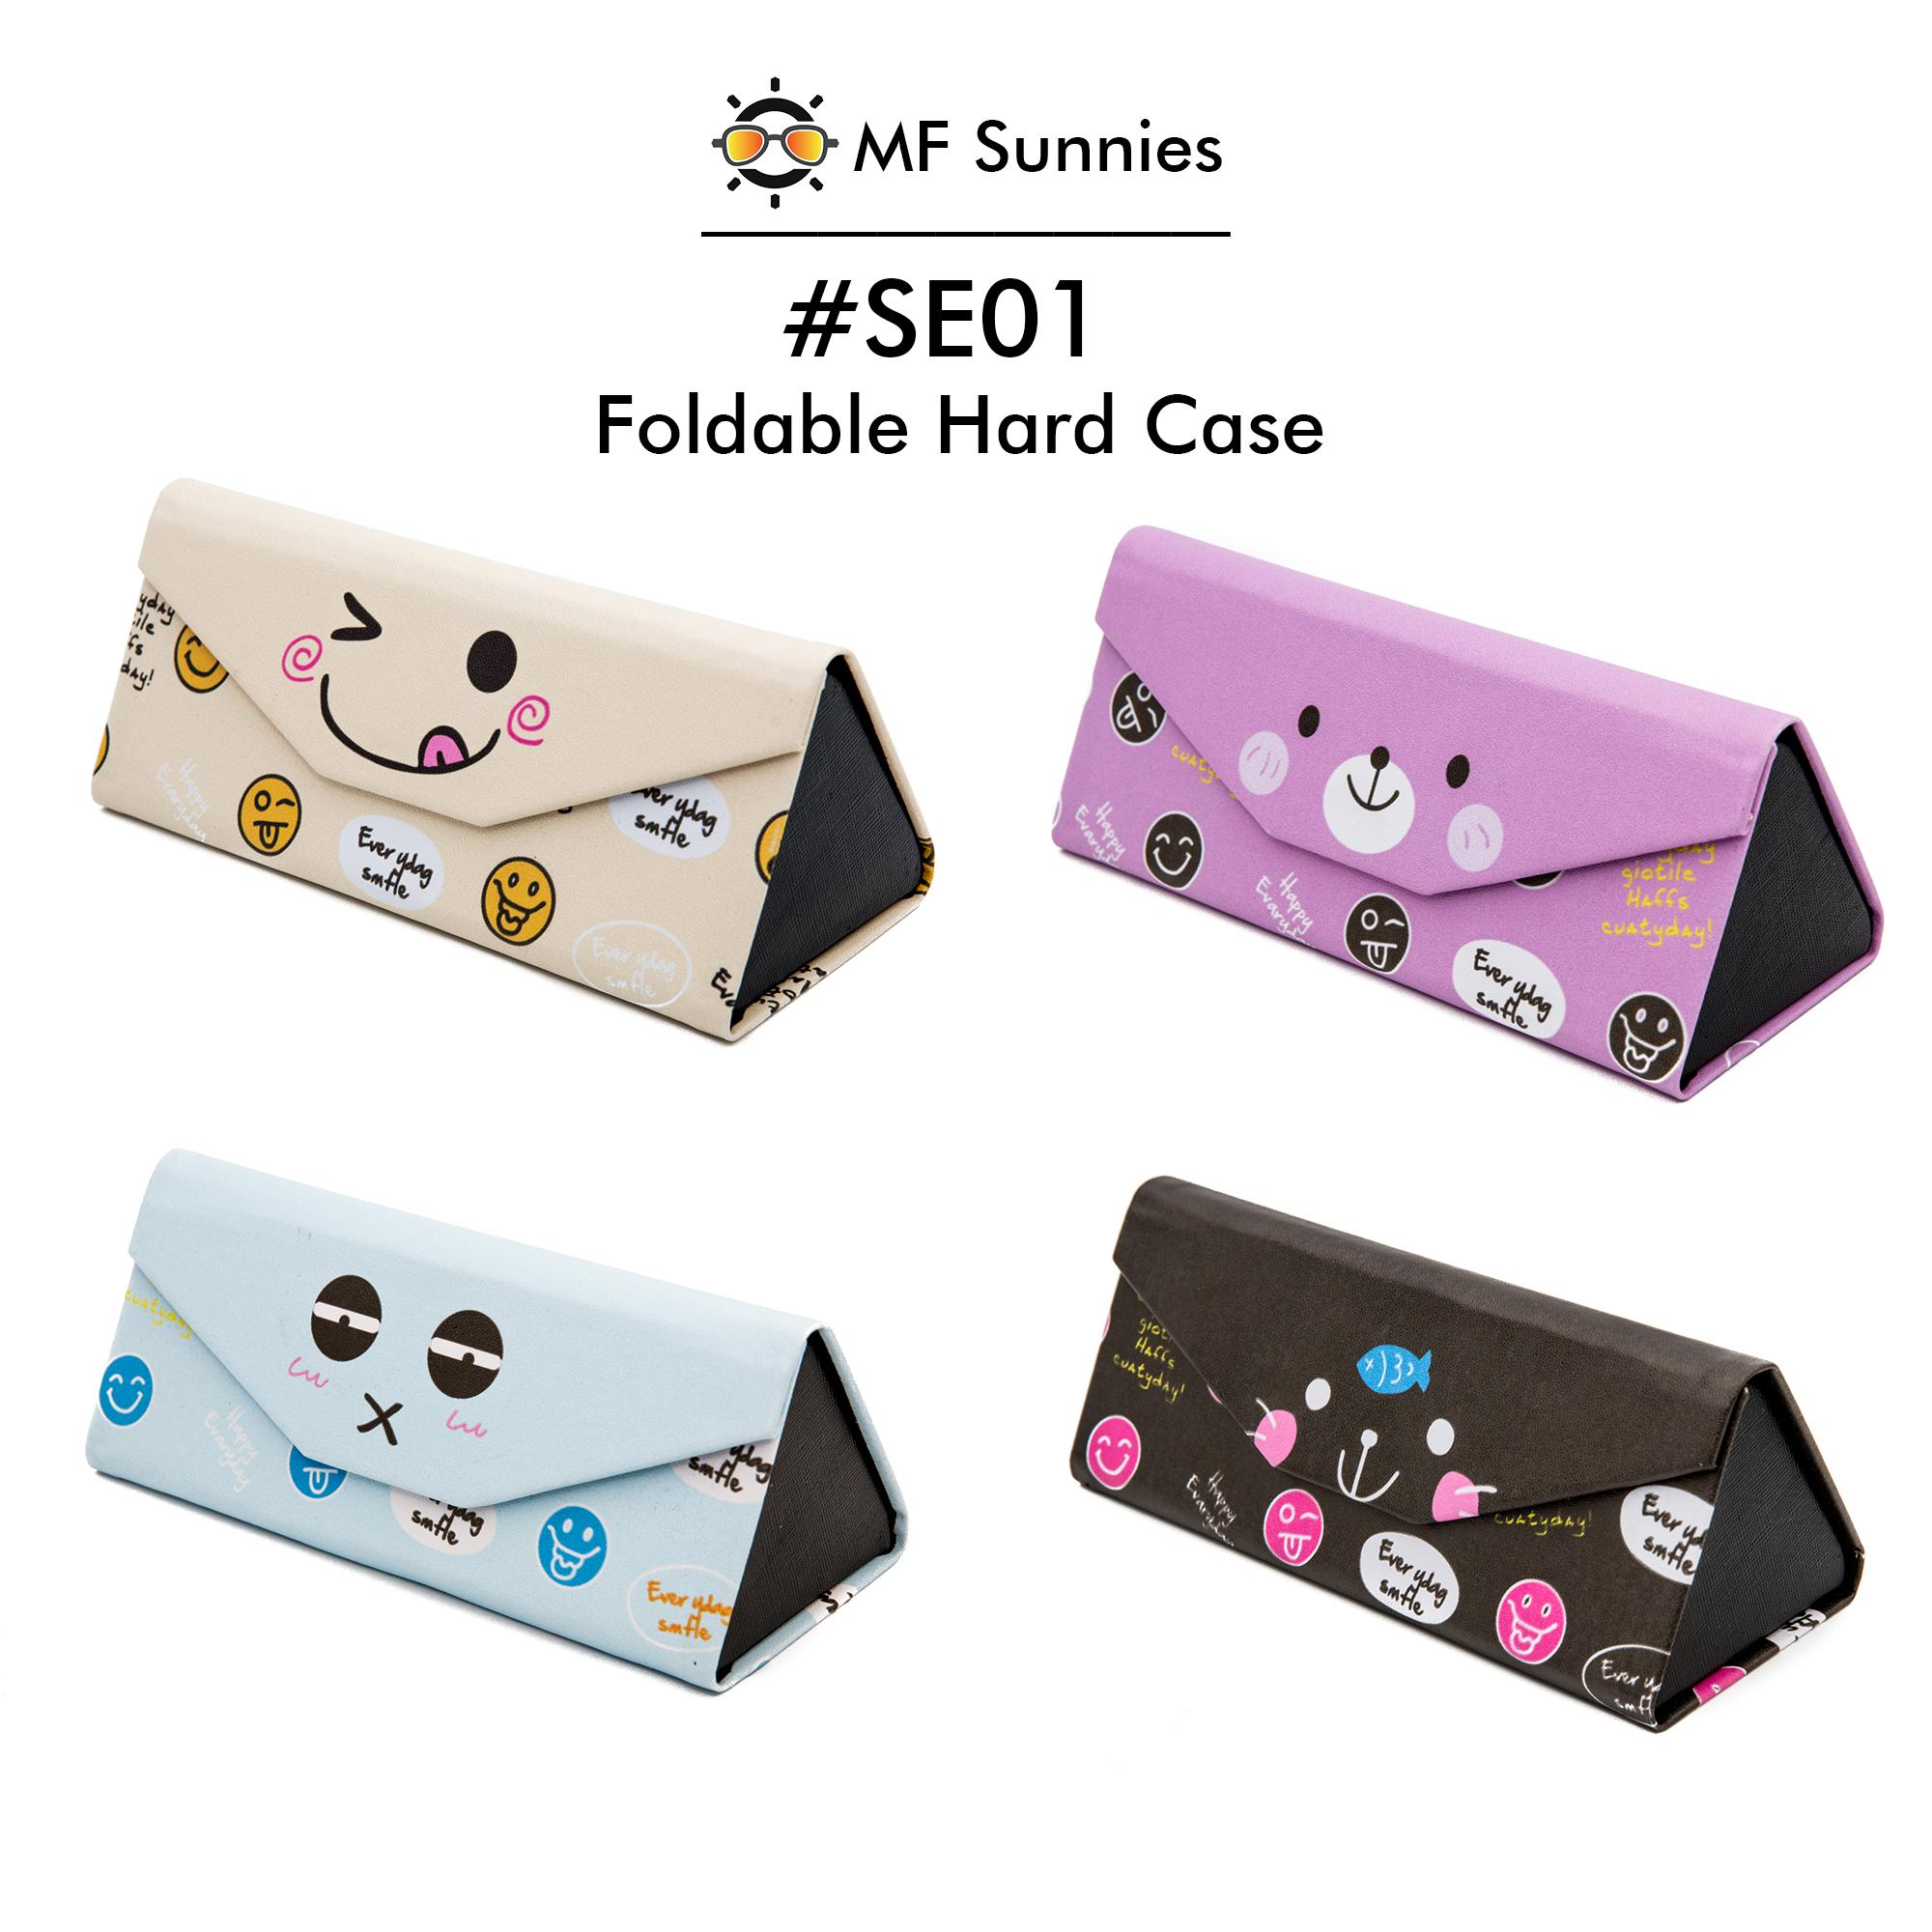 Women's Glasses Inventive 5 Colors Zipper Colorful Cover Sunglasses Case For Girls Glasses Box With Lanyard Eyeglass Cases For Women Men